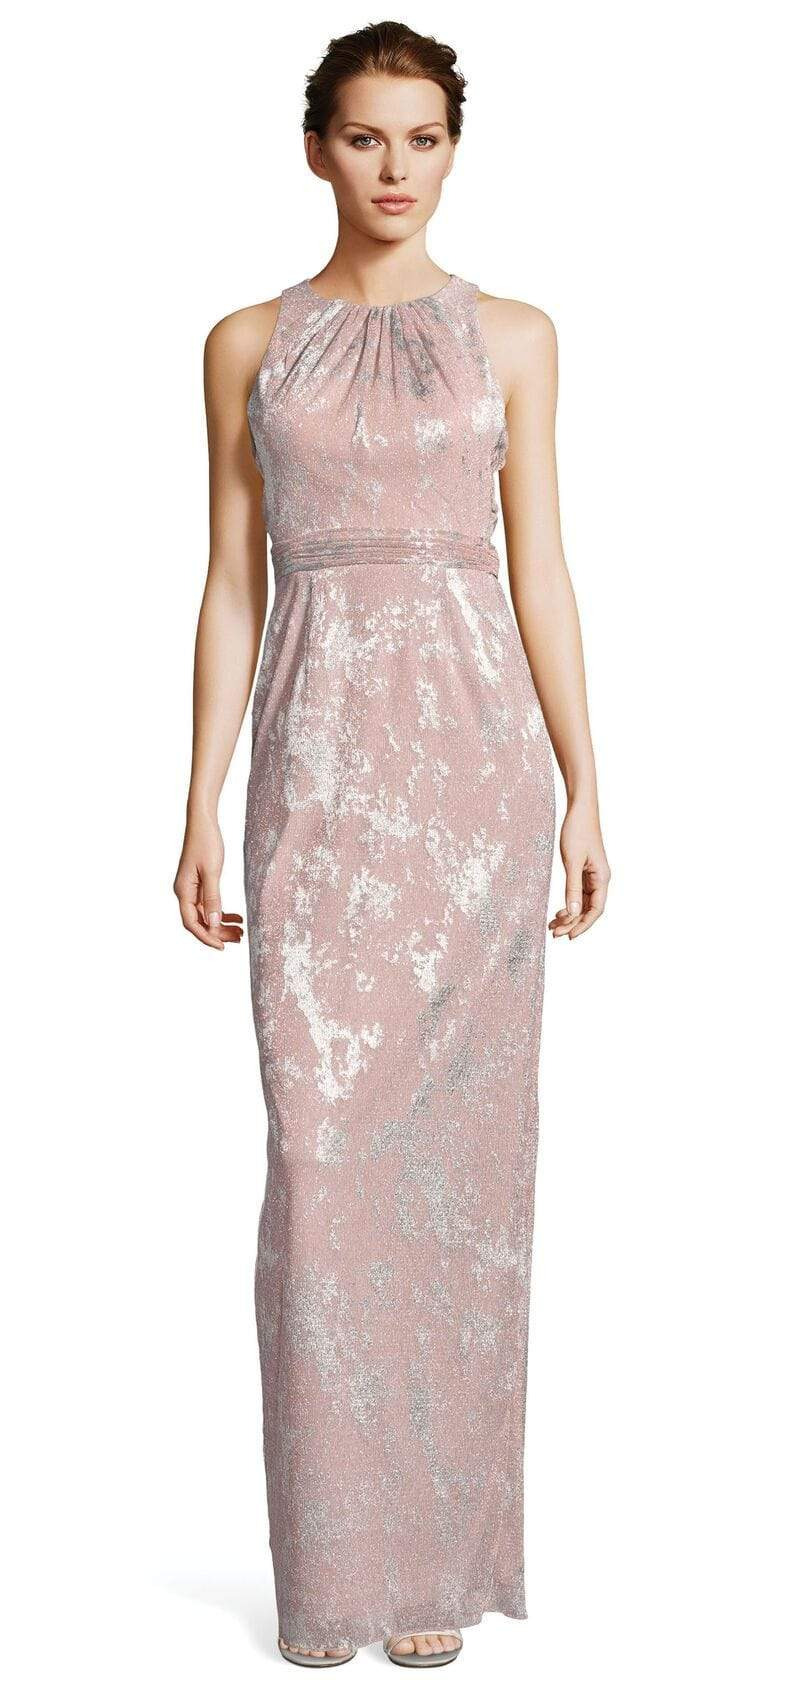 Adrianna Papell - AP1E203063 Pleated Jewel Metallic Knit Column Dress from Adrianna Papell